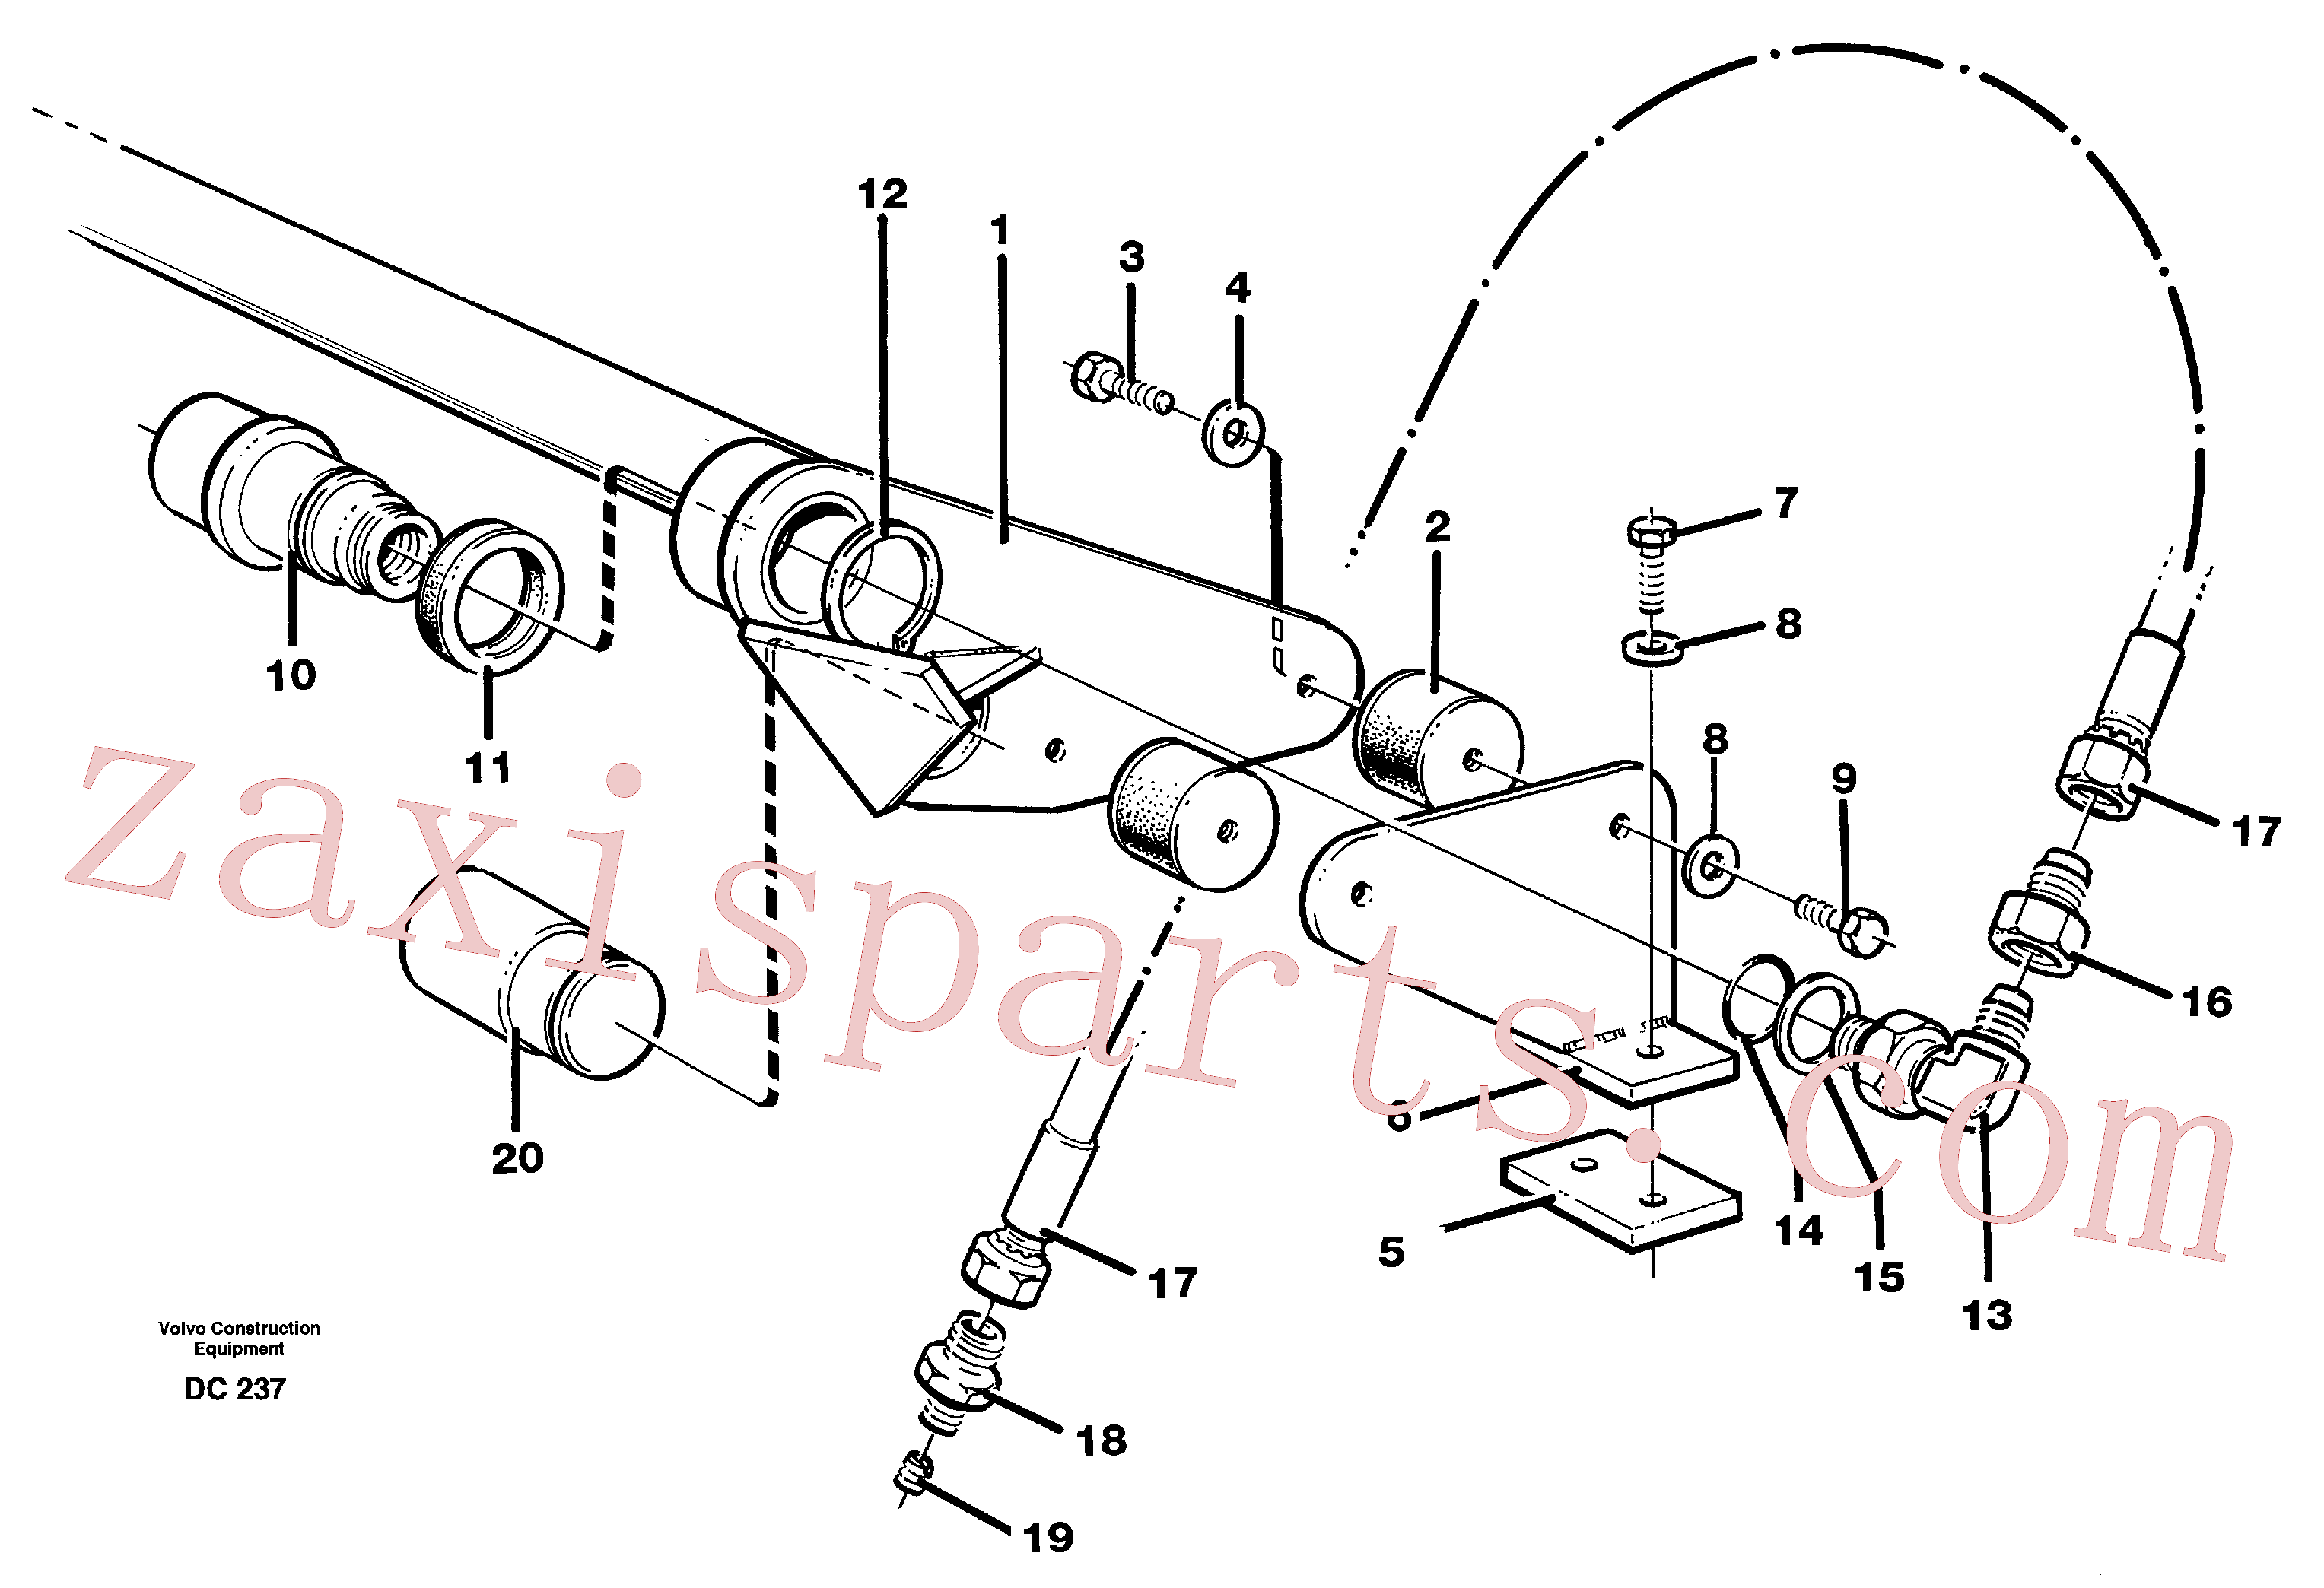 VOE4859176 for Volvo Ahc(DC237 assembly)